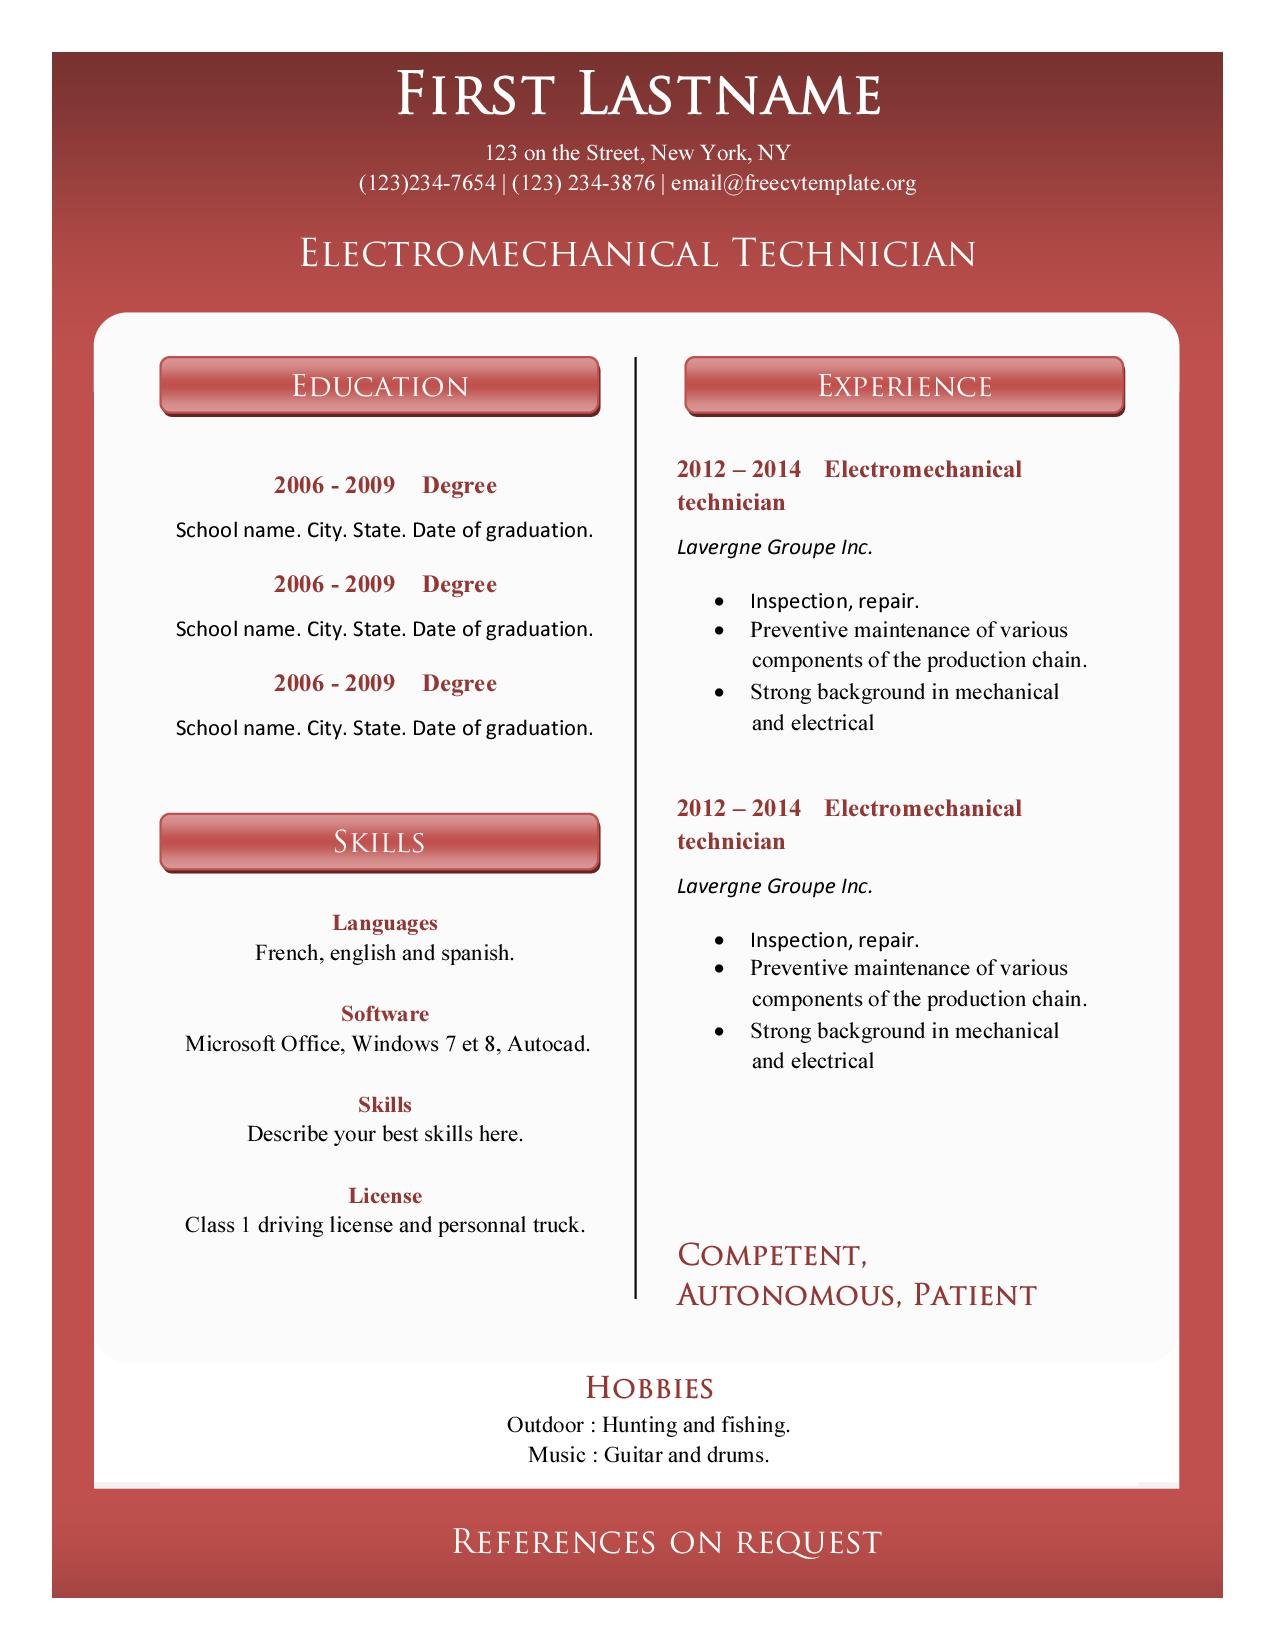 Resume cv templates #374 to 379